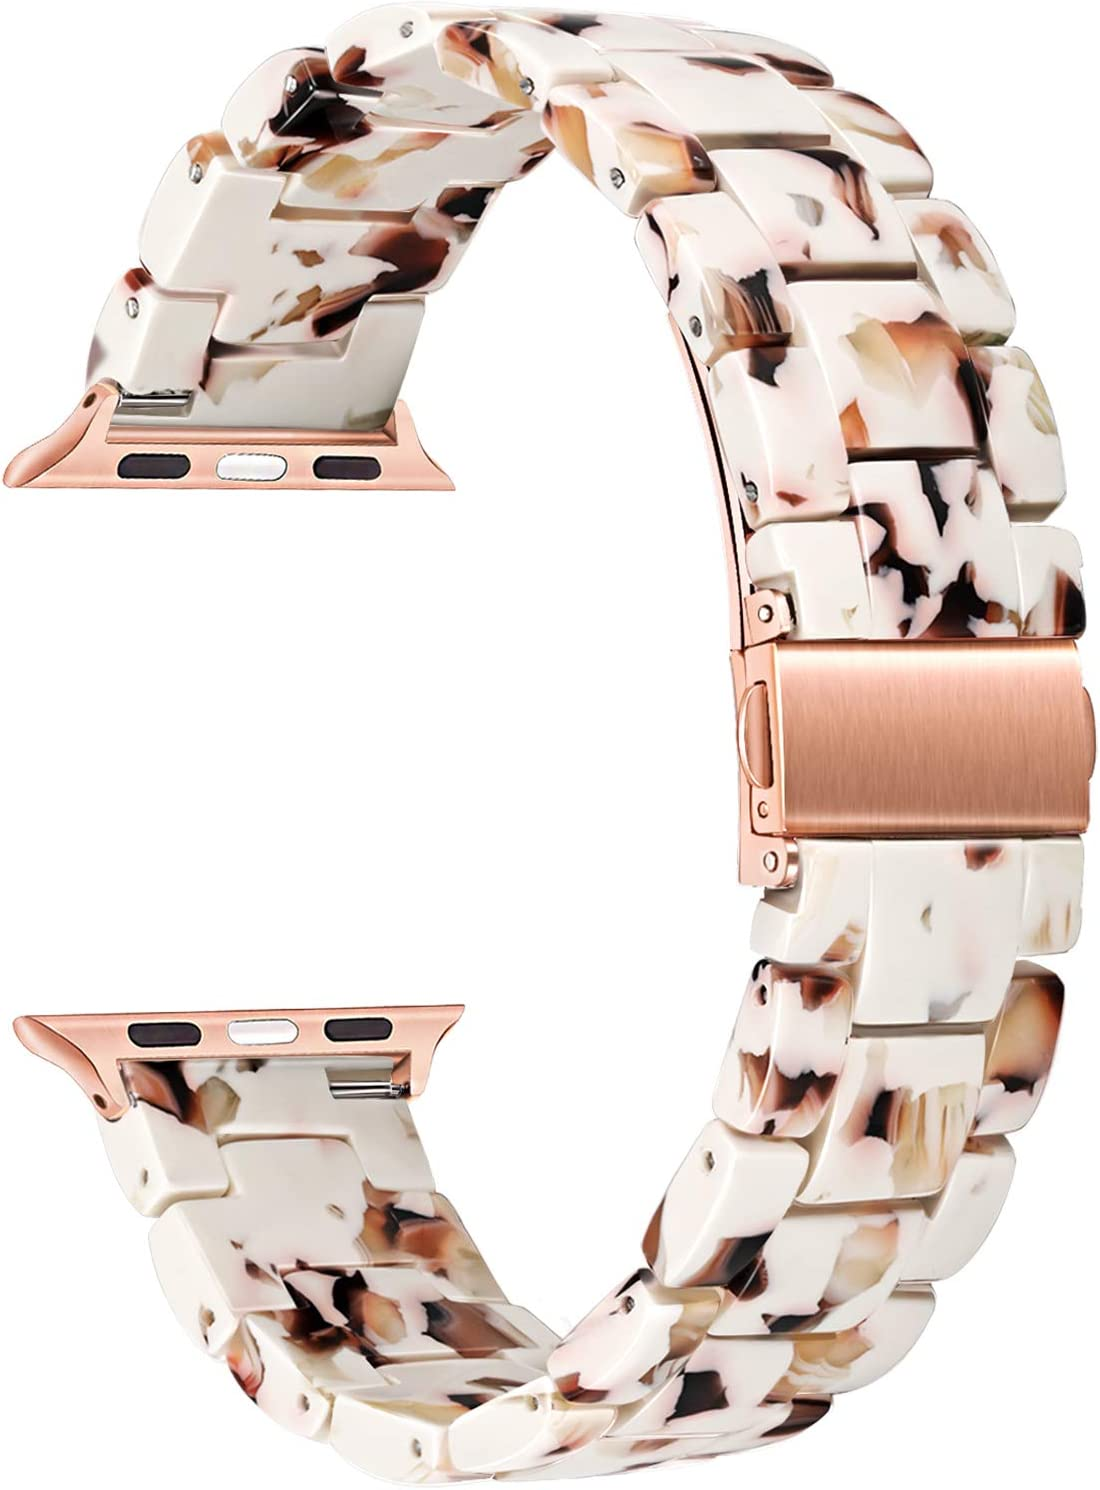 TRUMiRR Women Band Compatible for Apple Watch 38mm 40mm, Fashion Resin Watchband Rose Gold Stainless Steel Buckle Strap Bracelet for iWatch SE Apple Watch Series 6 5 4 3 2 1 38mm 40mm